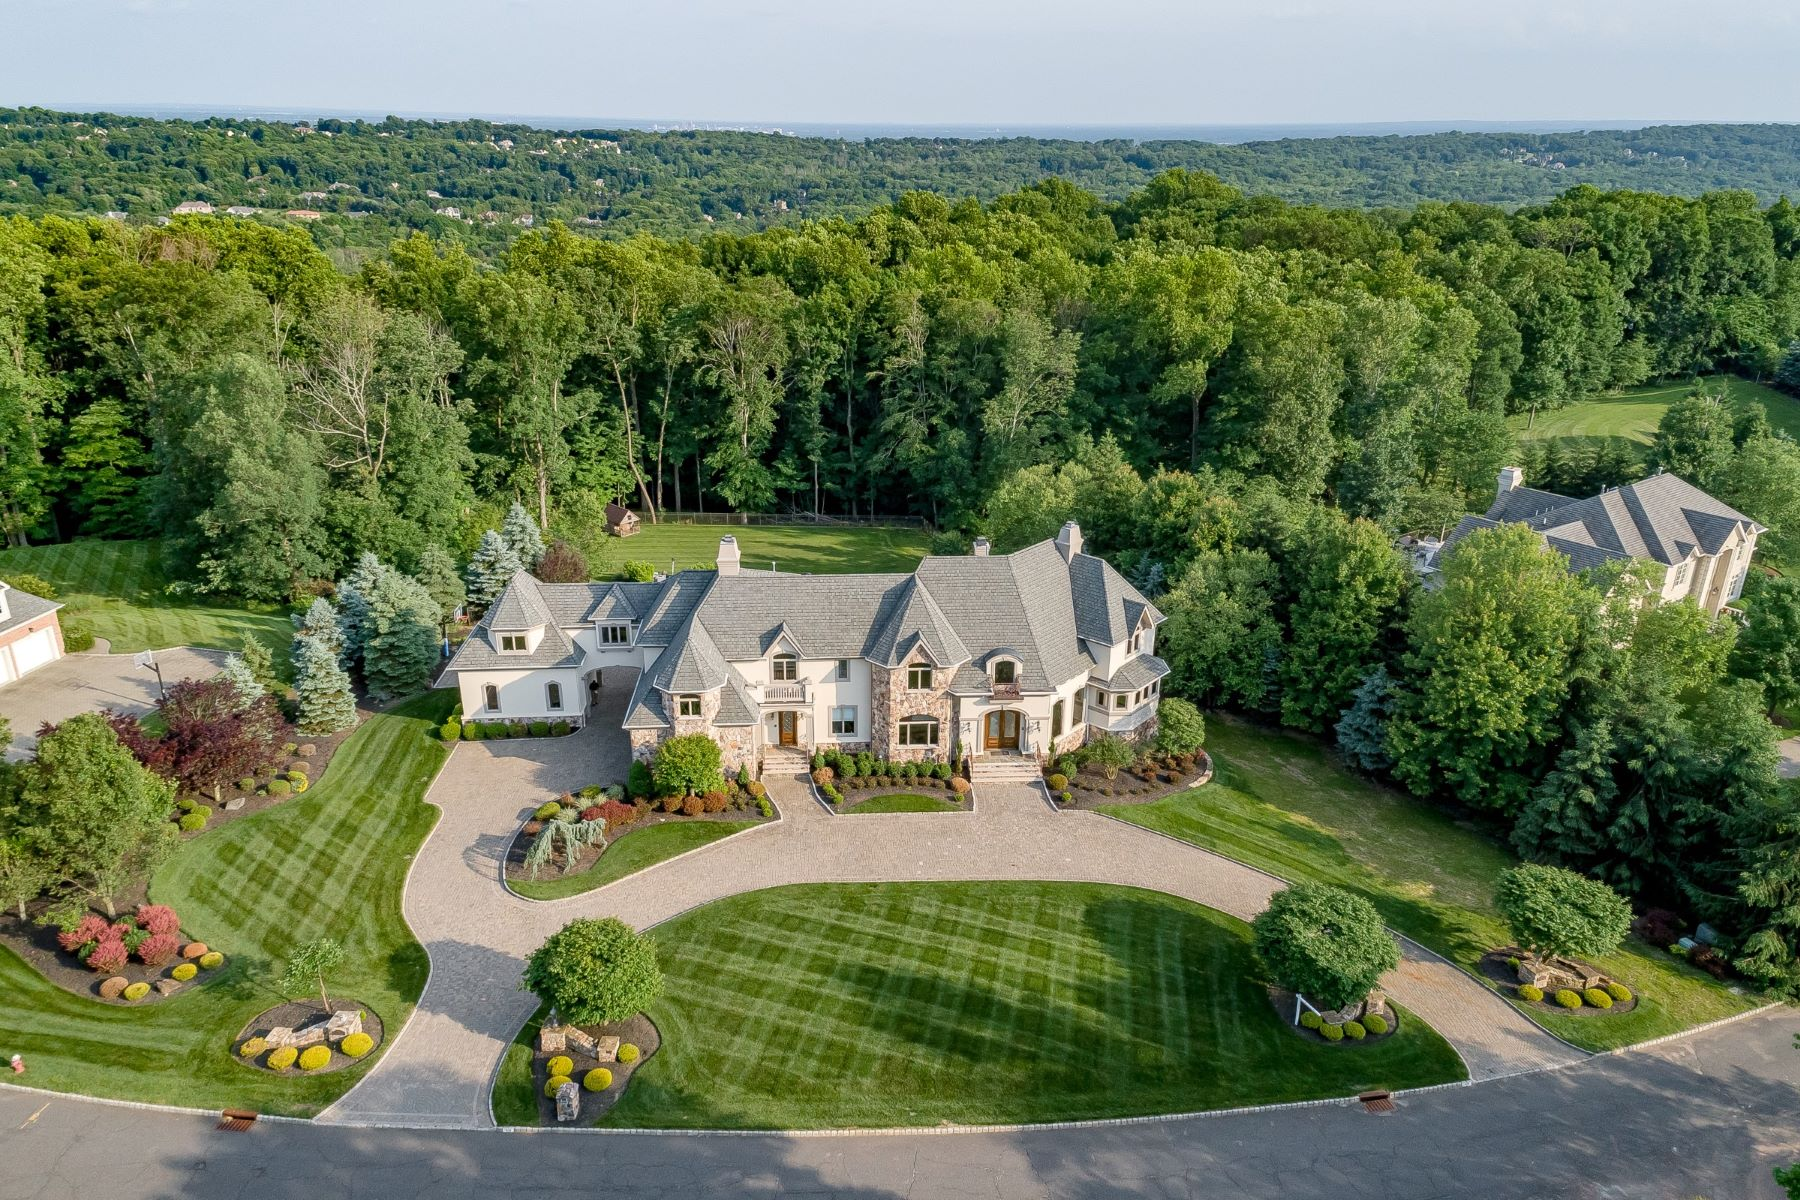 Single Family Homes for Sale at Updated Castle Ridge Residence 59 Geiger Lane Warren, New Jersey 07059 United States